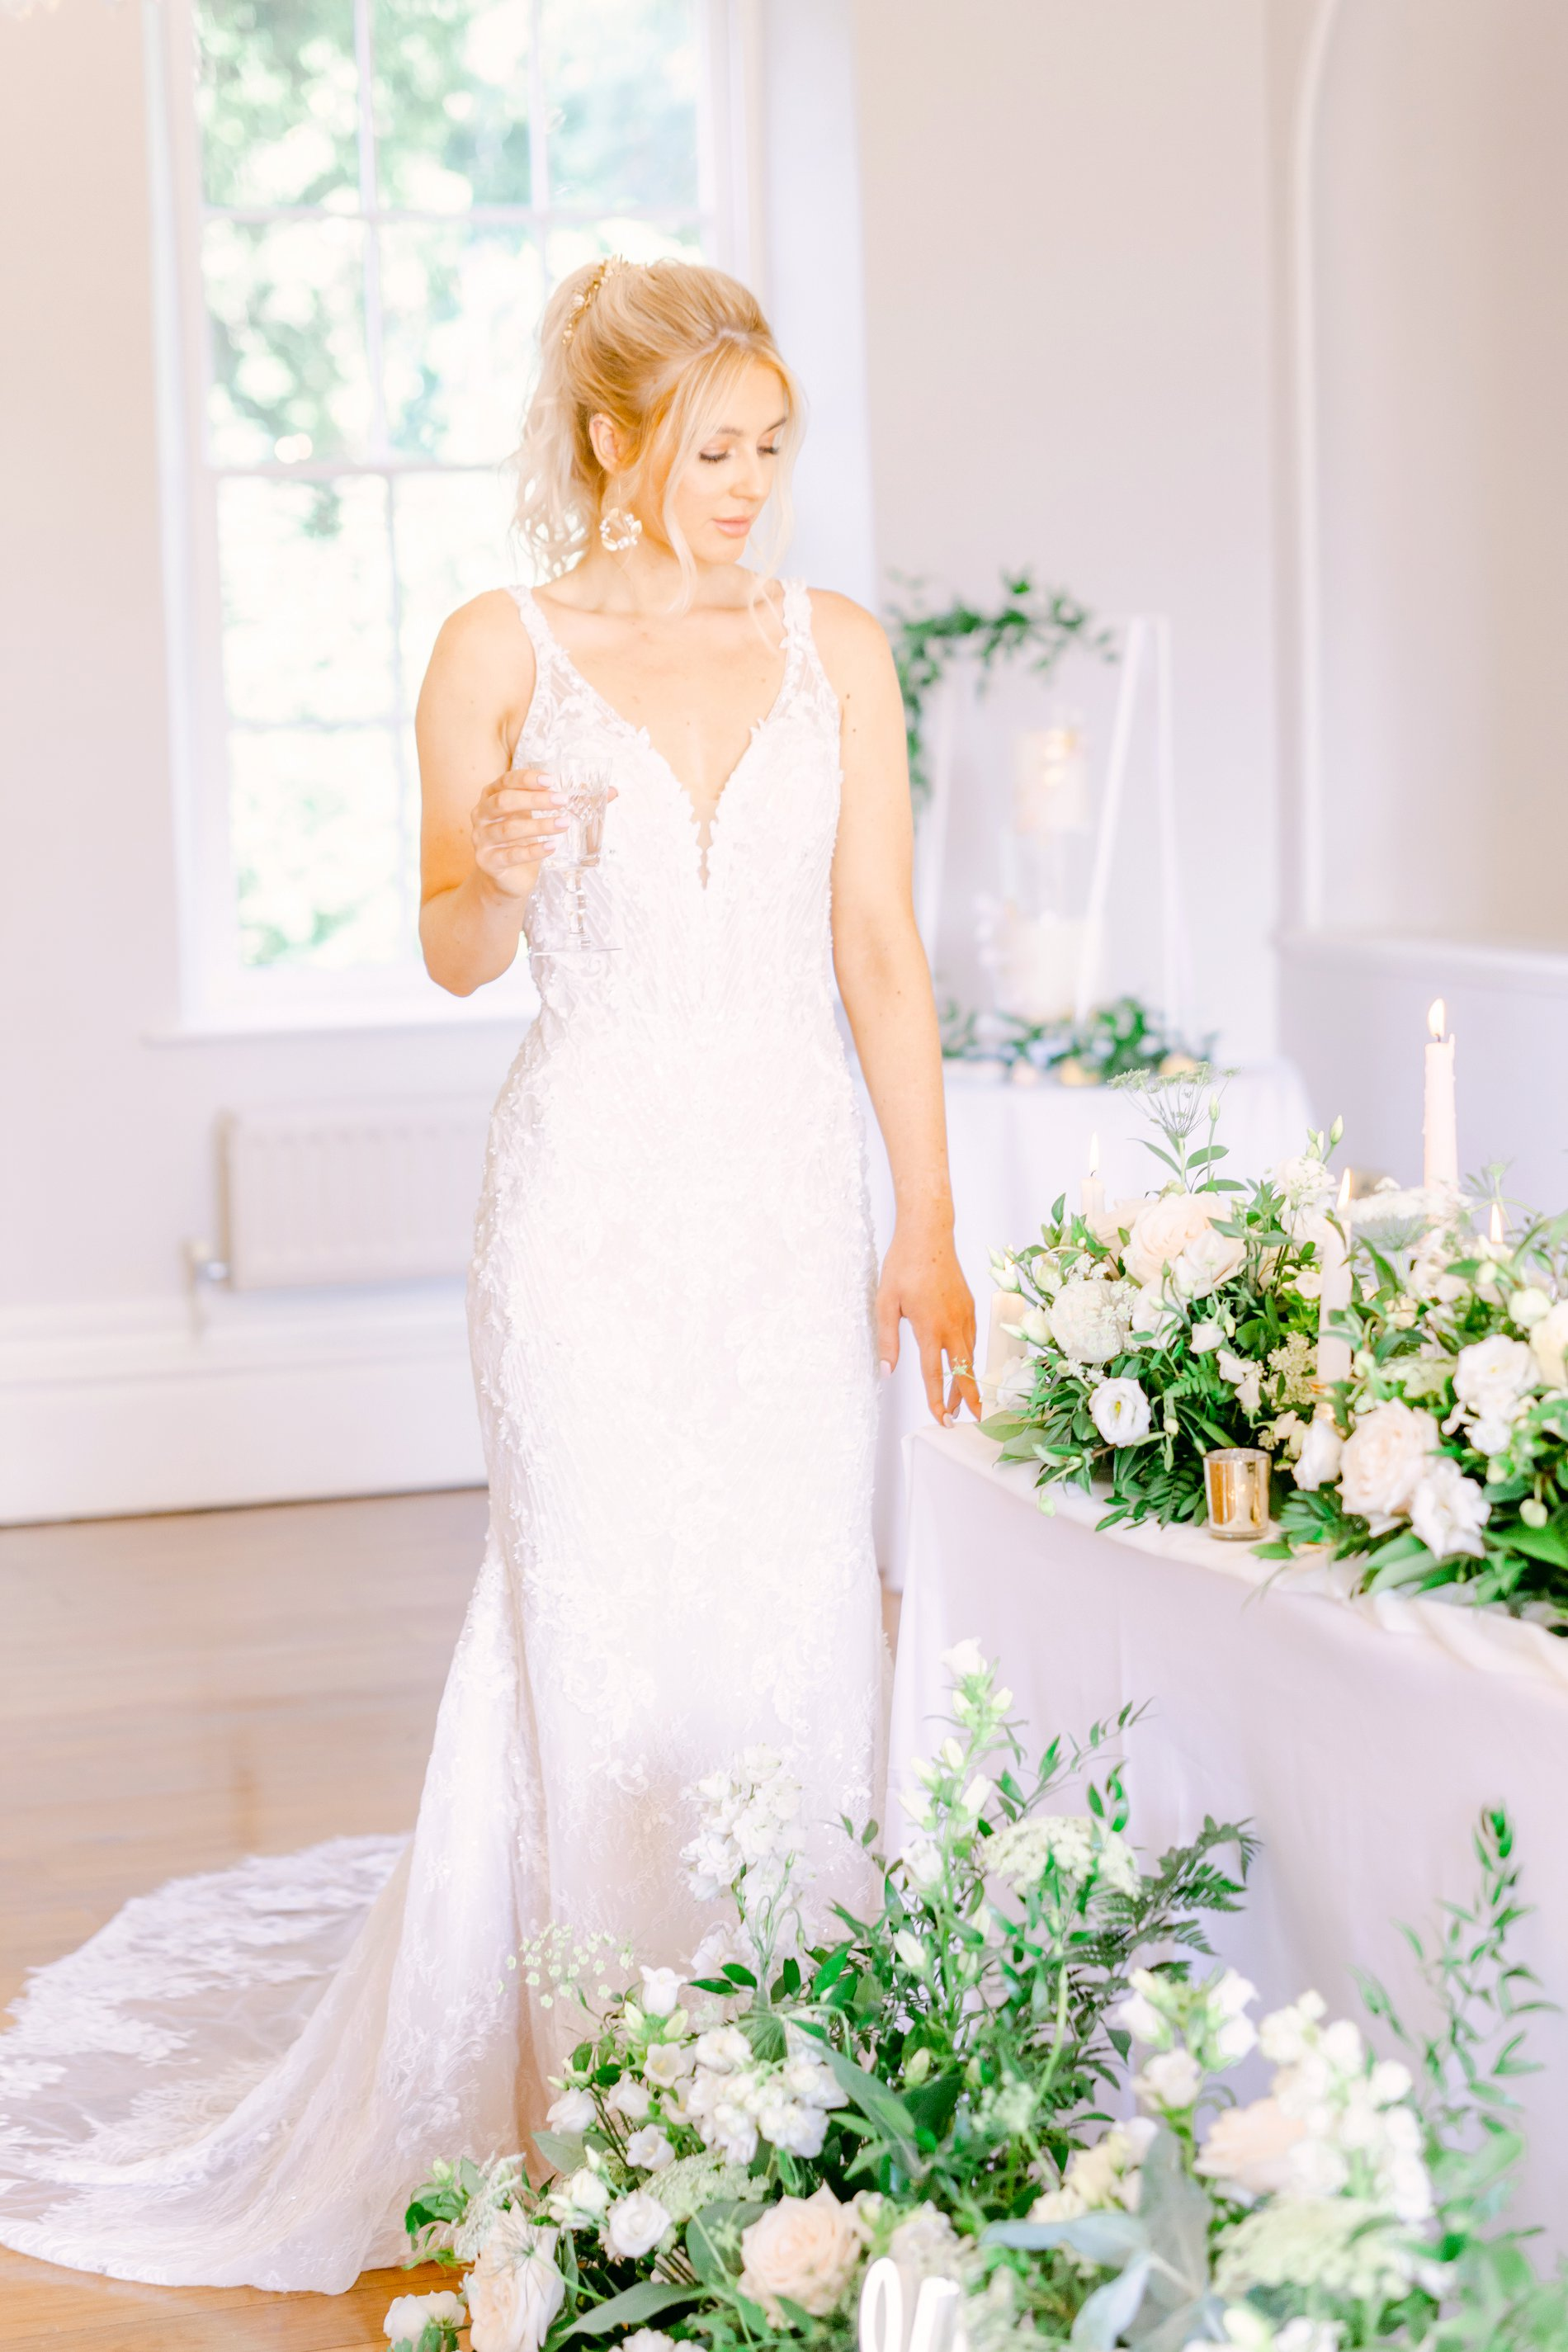 An Elegant UNVEILED Network wedding shoot at Hirst Priory (c) Ailsa Reeve Photography (26)